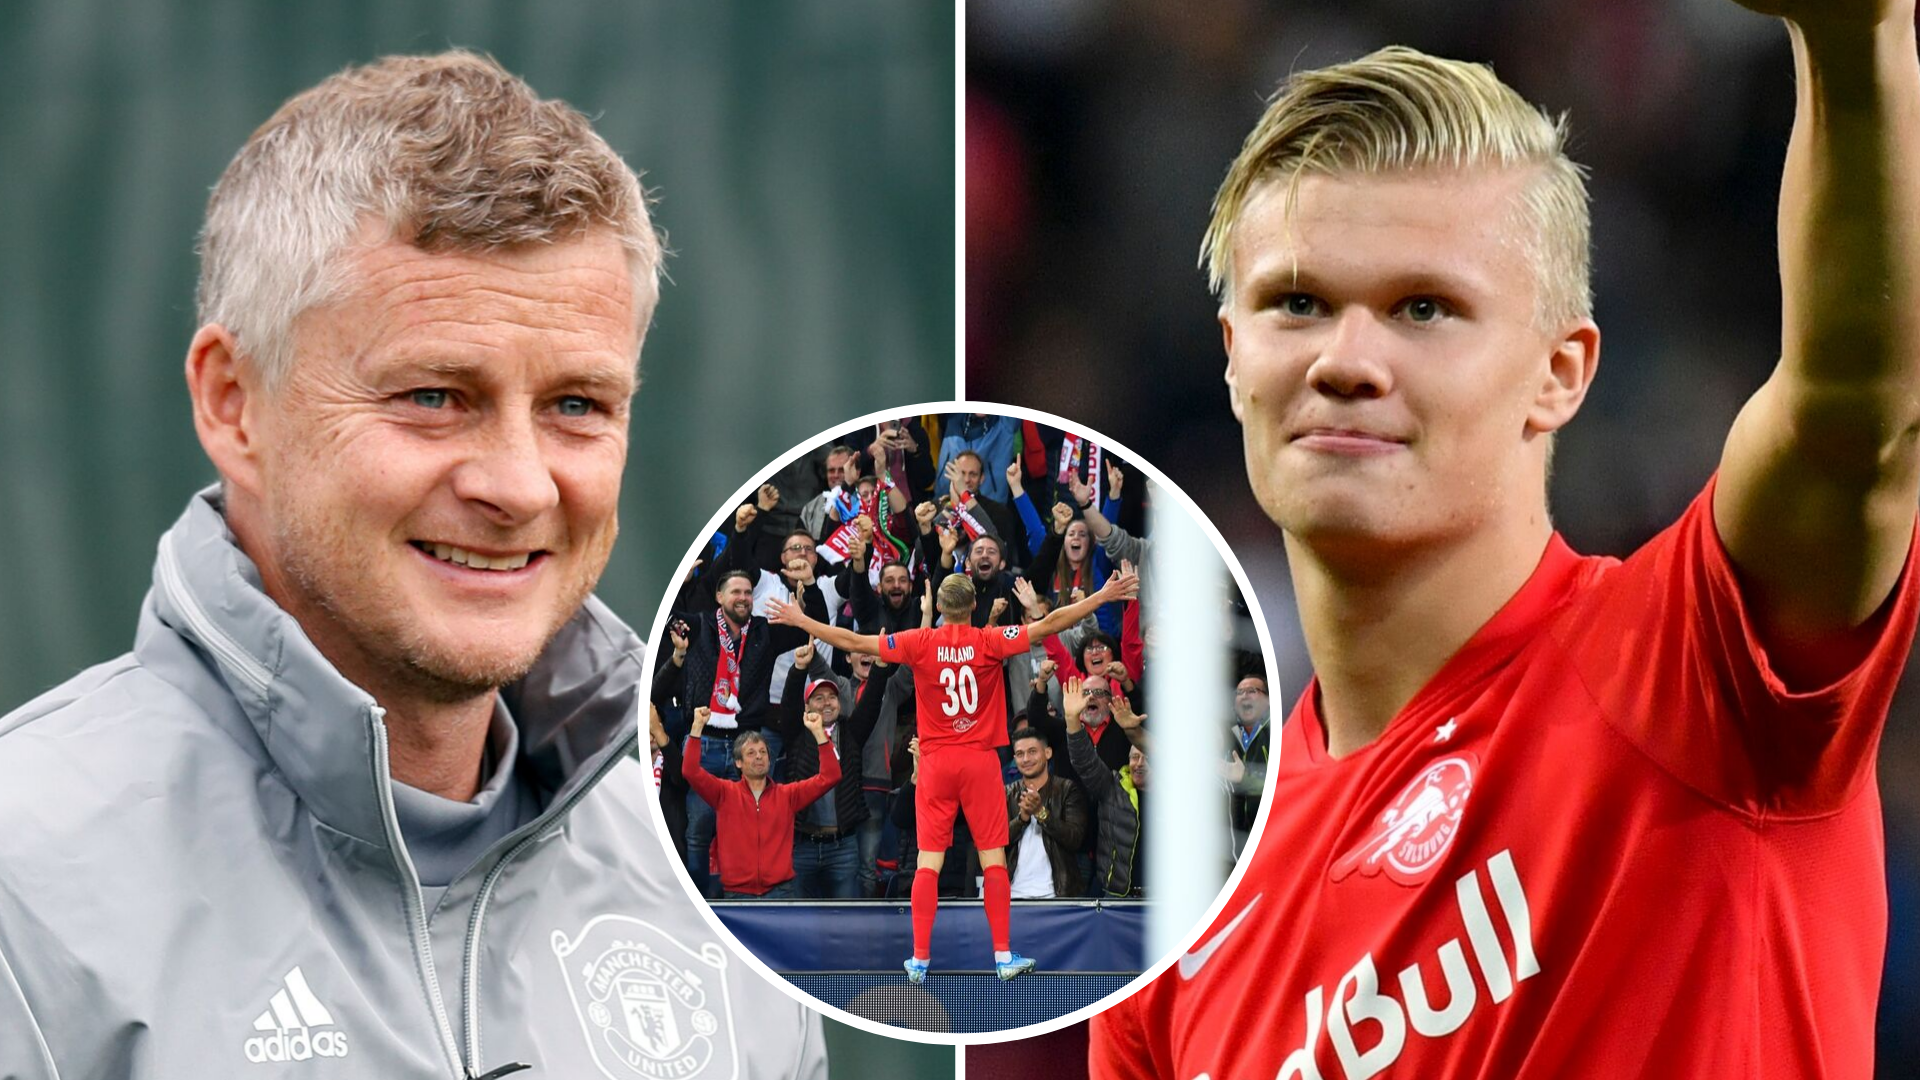 Erling Braut Haland S Father Opens Up About His Son Signing For Manchester United Sportbible